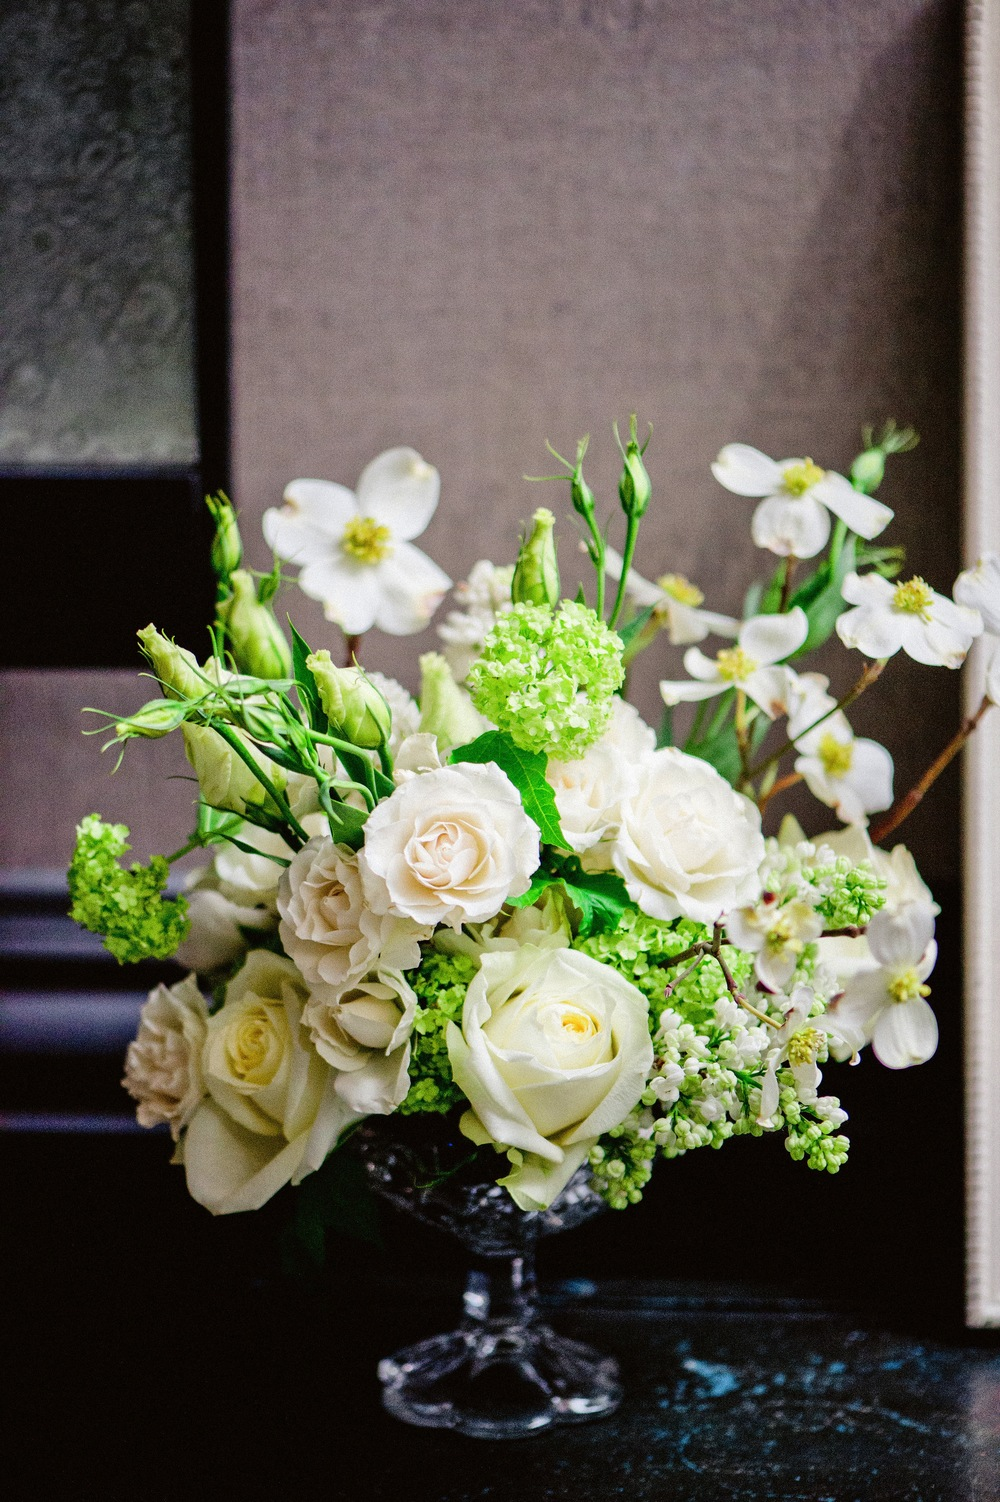 Flowers by Fleur Inc, photo by Amanda Megan Miller, wedding with Jayne Weddings